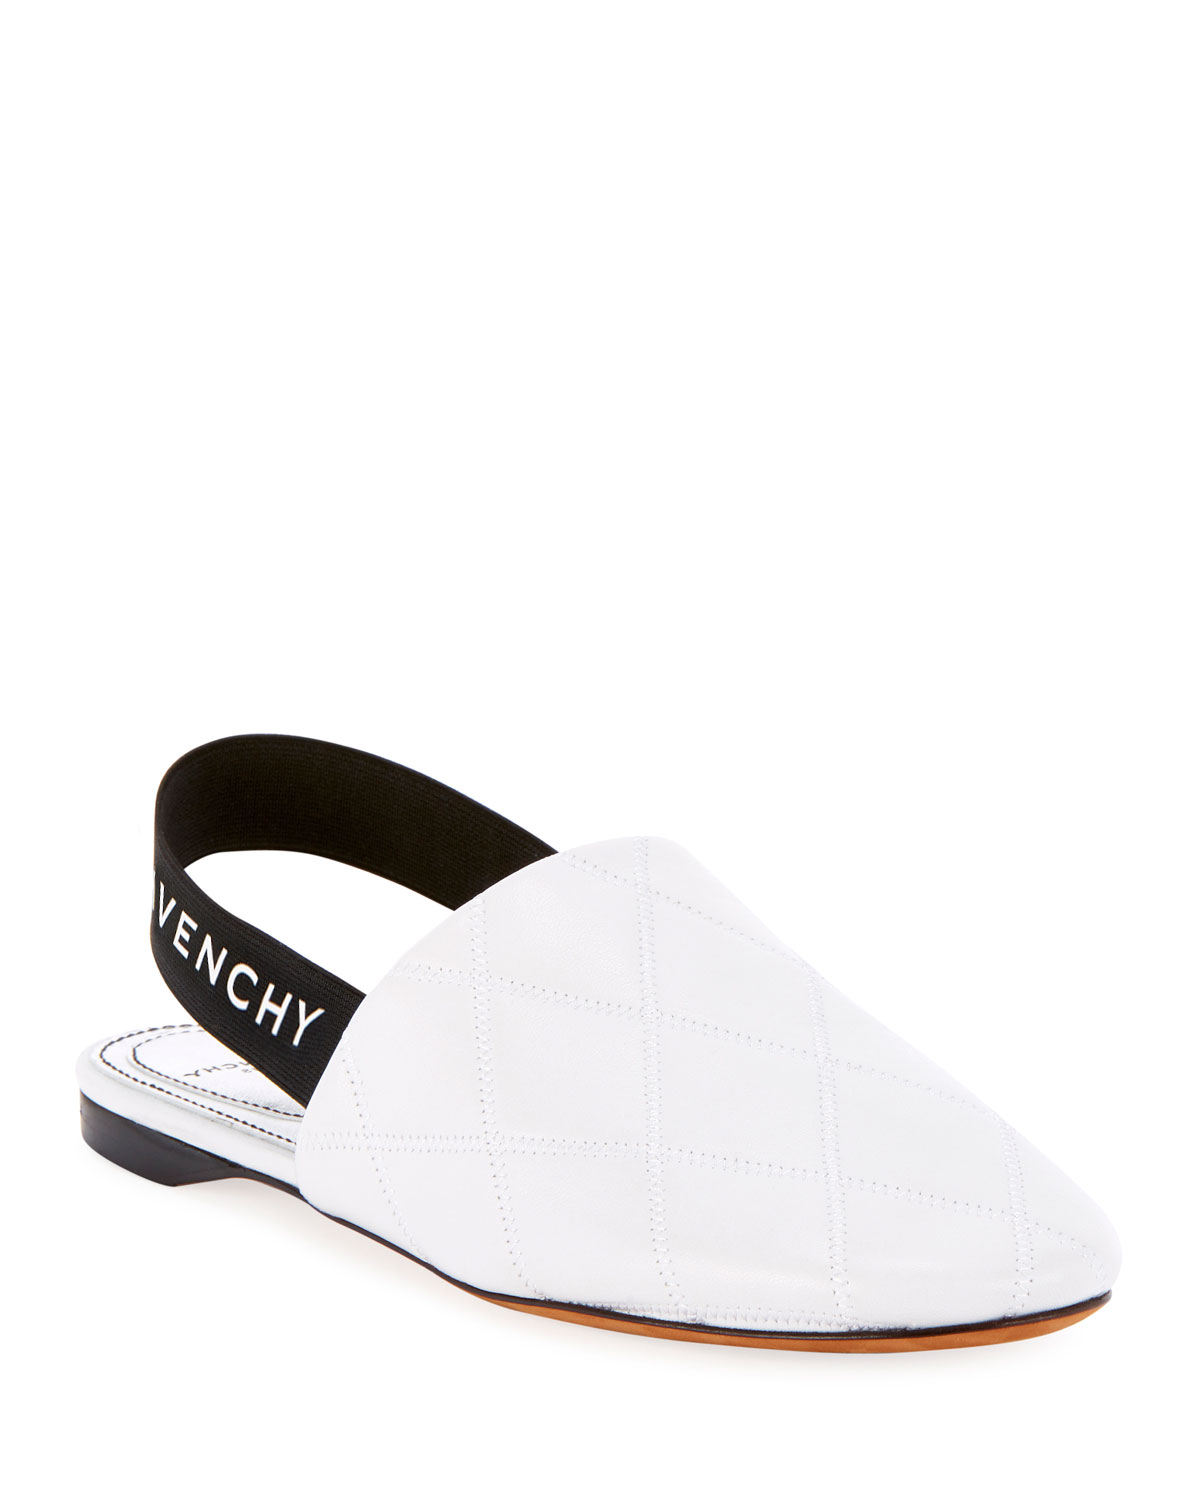 f92a03e2569 Givenchy Rivington Quilted Slingback Flats